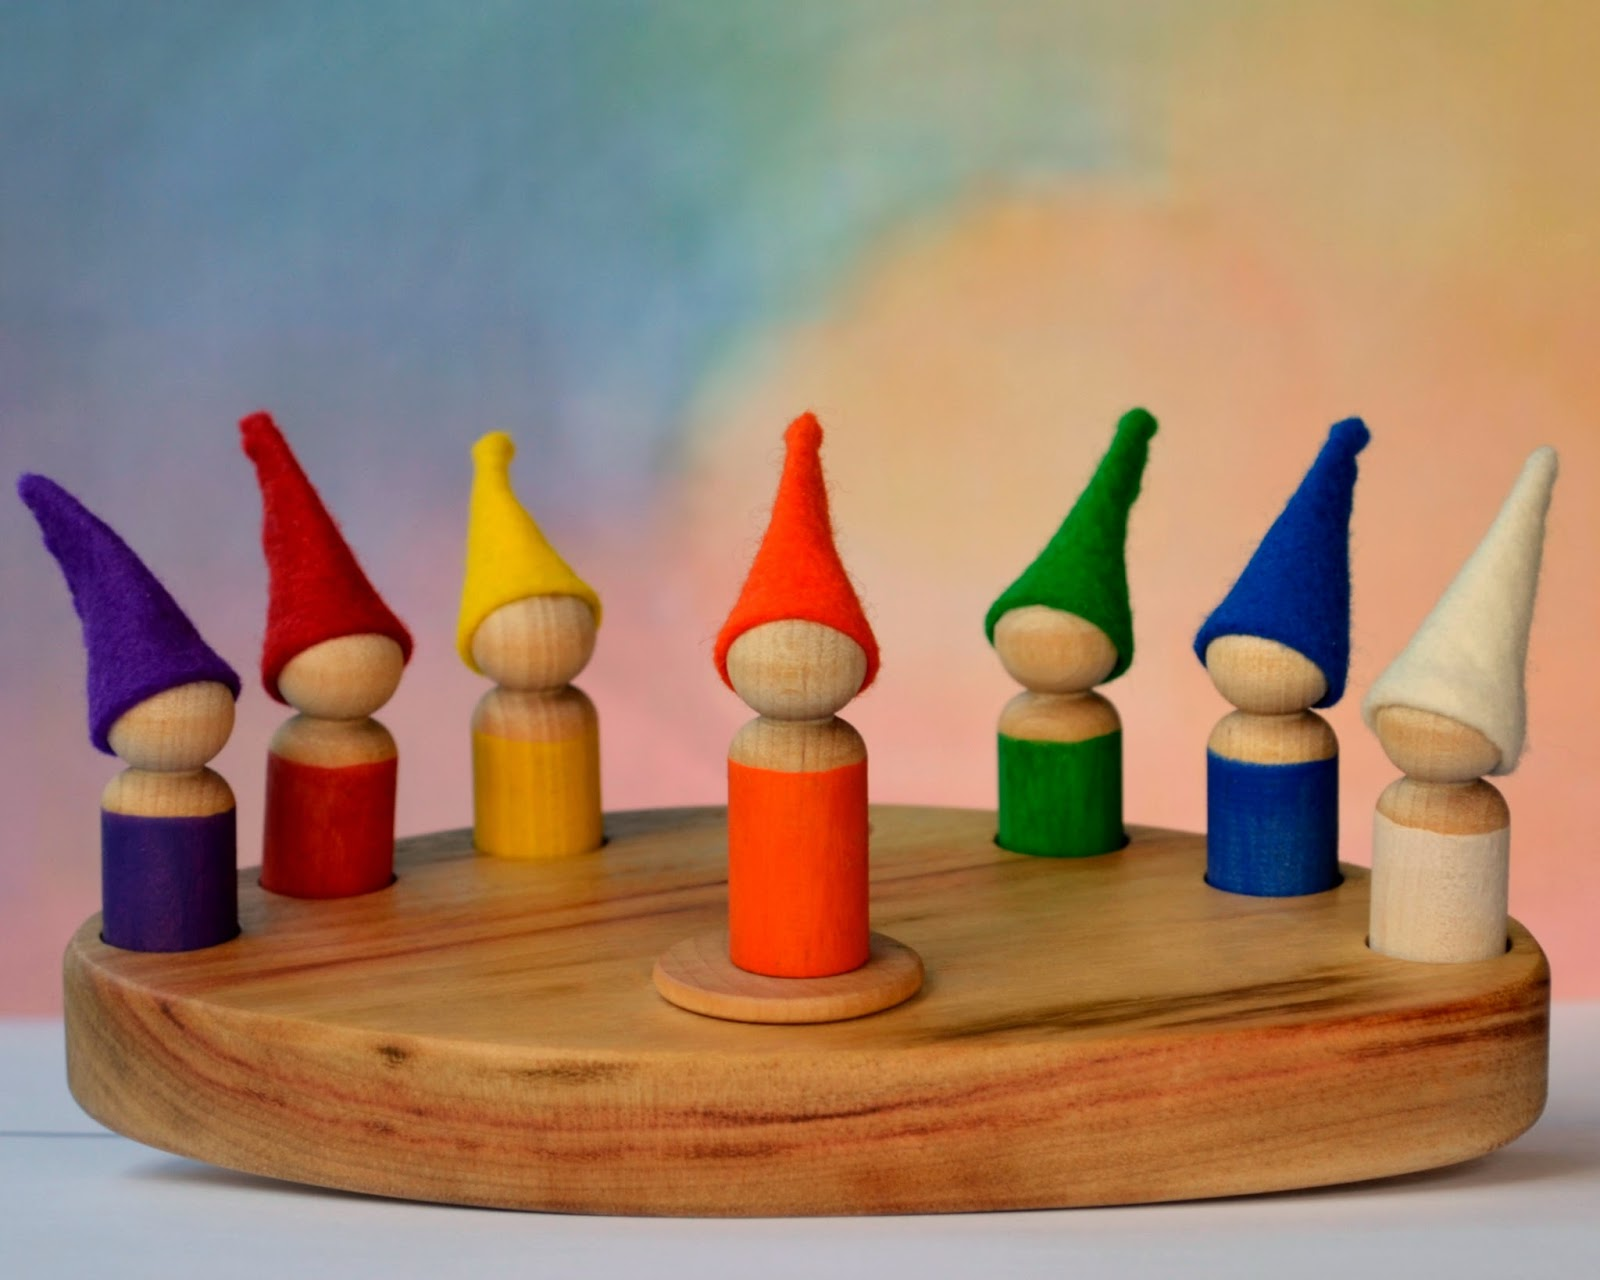 Waldorf on etsy a most wonderful waldorf toy and art store - Material waldorf ...